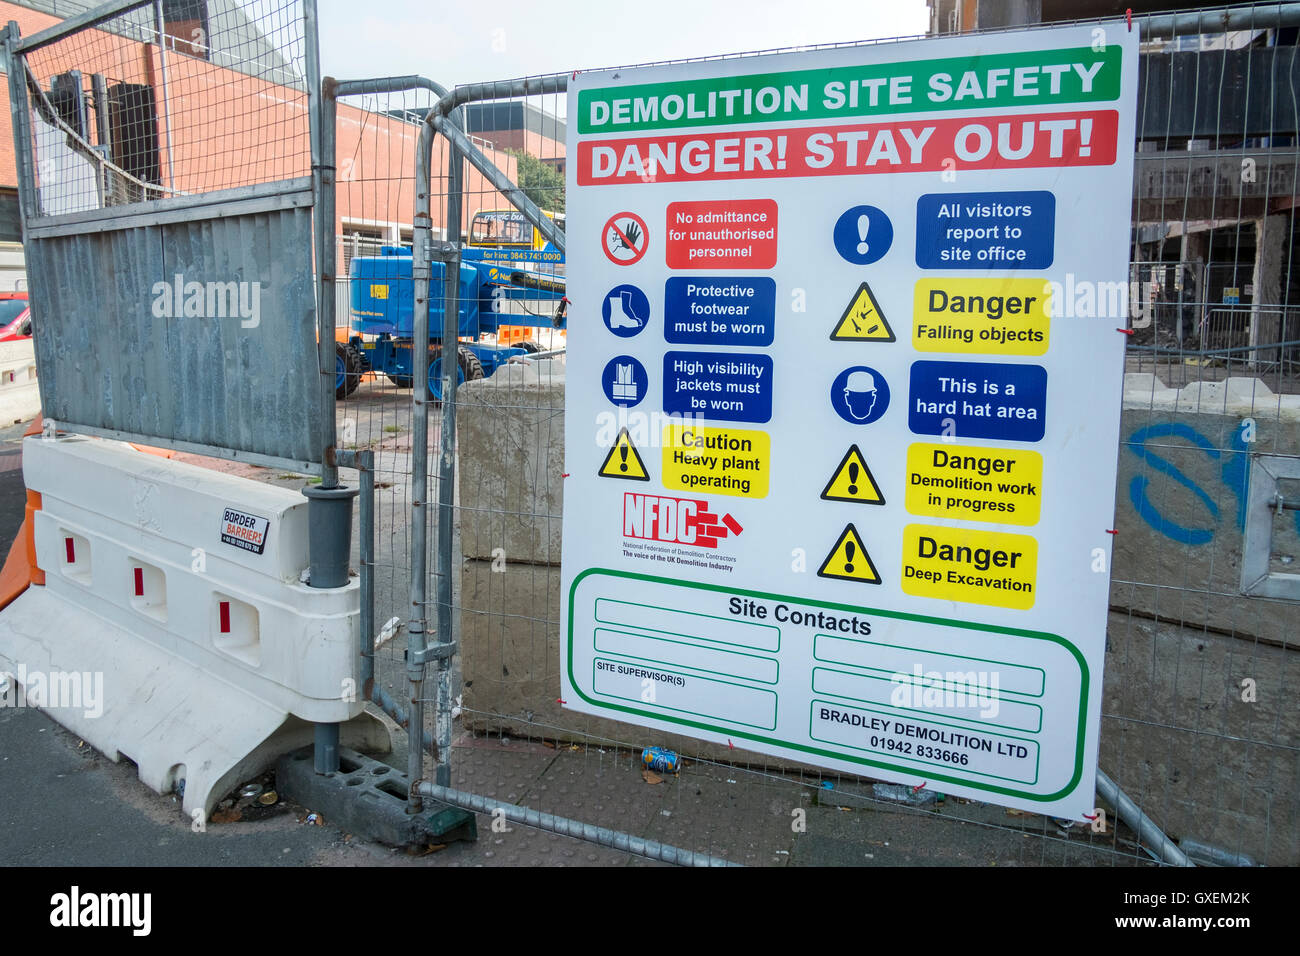 Construction site safety notice 'Danger, Stay Out!', Manchester, England, Uk - Stock Image